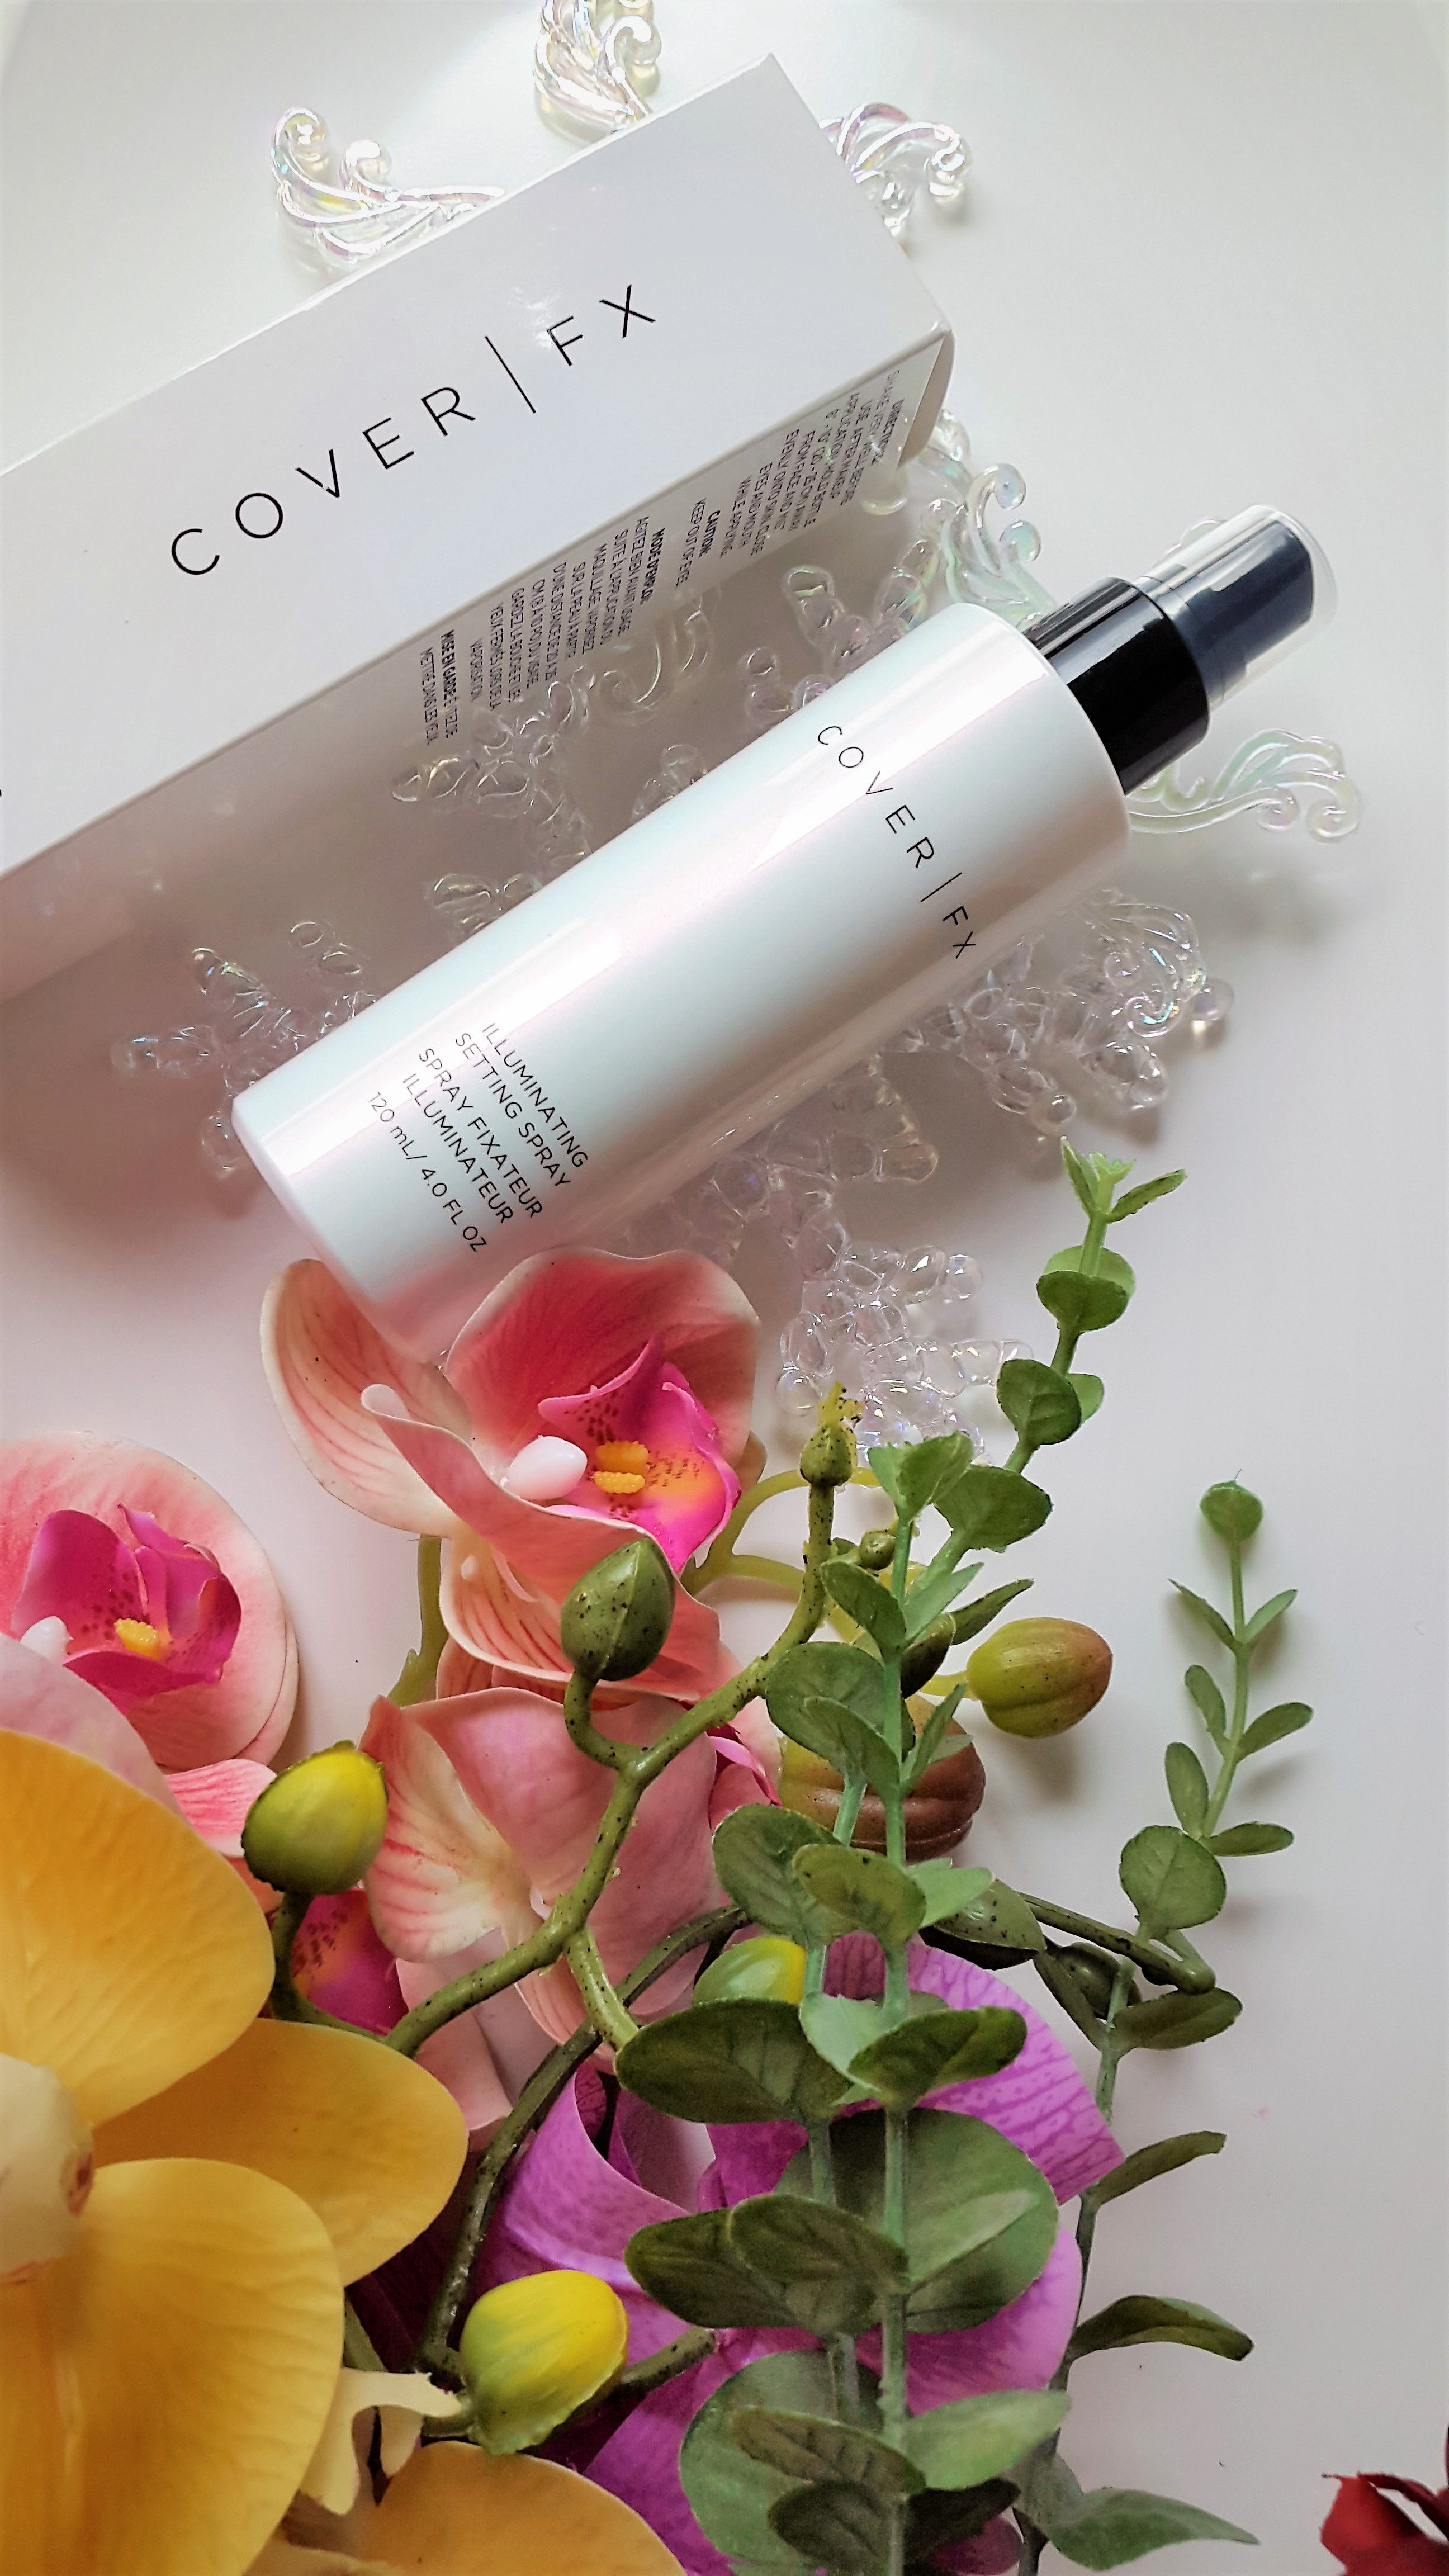 Cover FX Illuminating Setting Spray Review POST YOUR